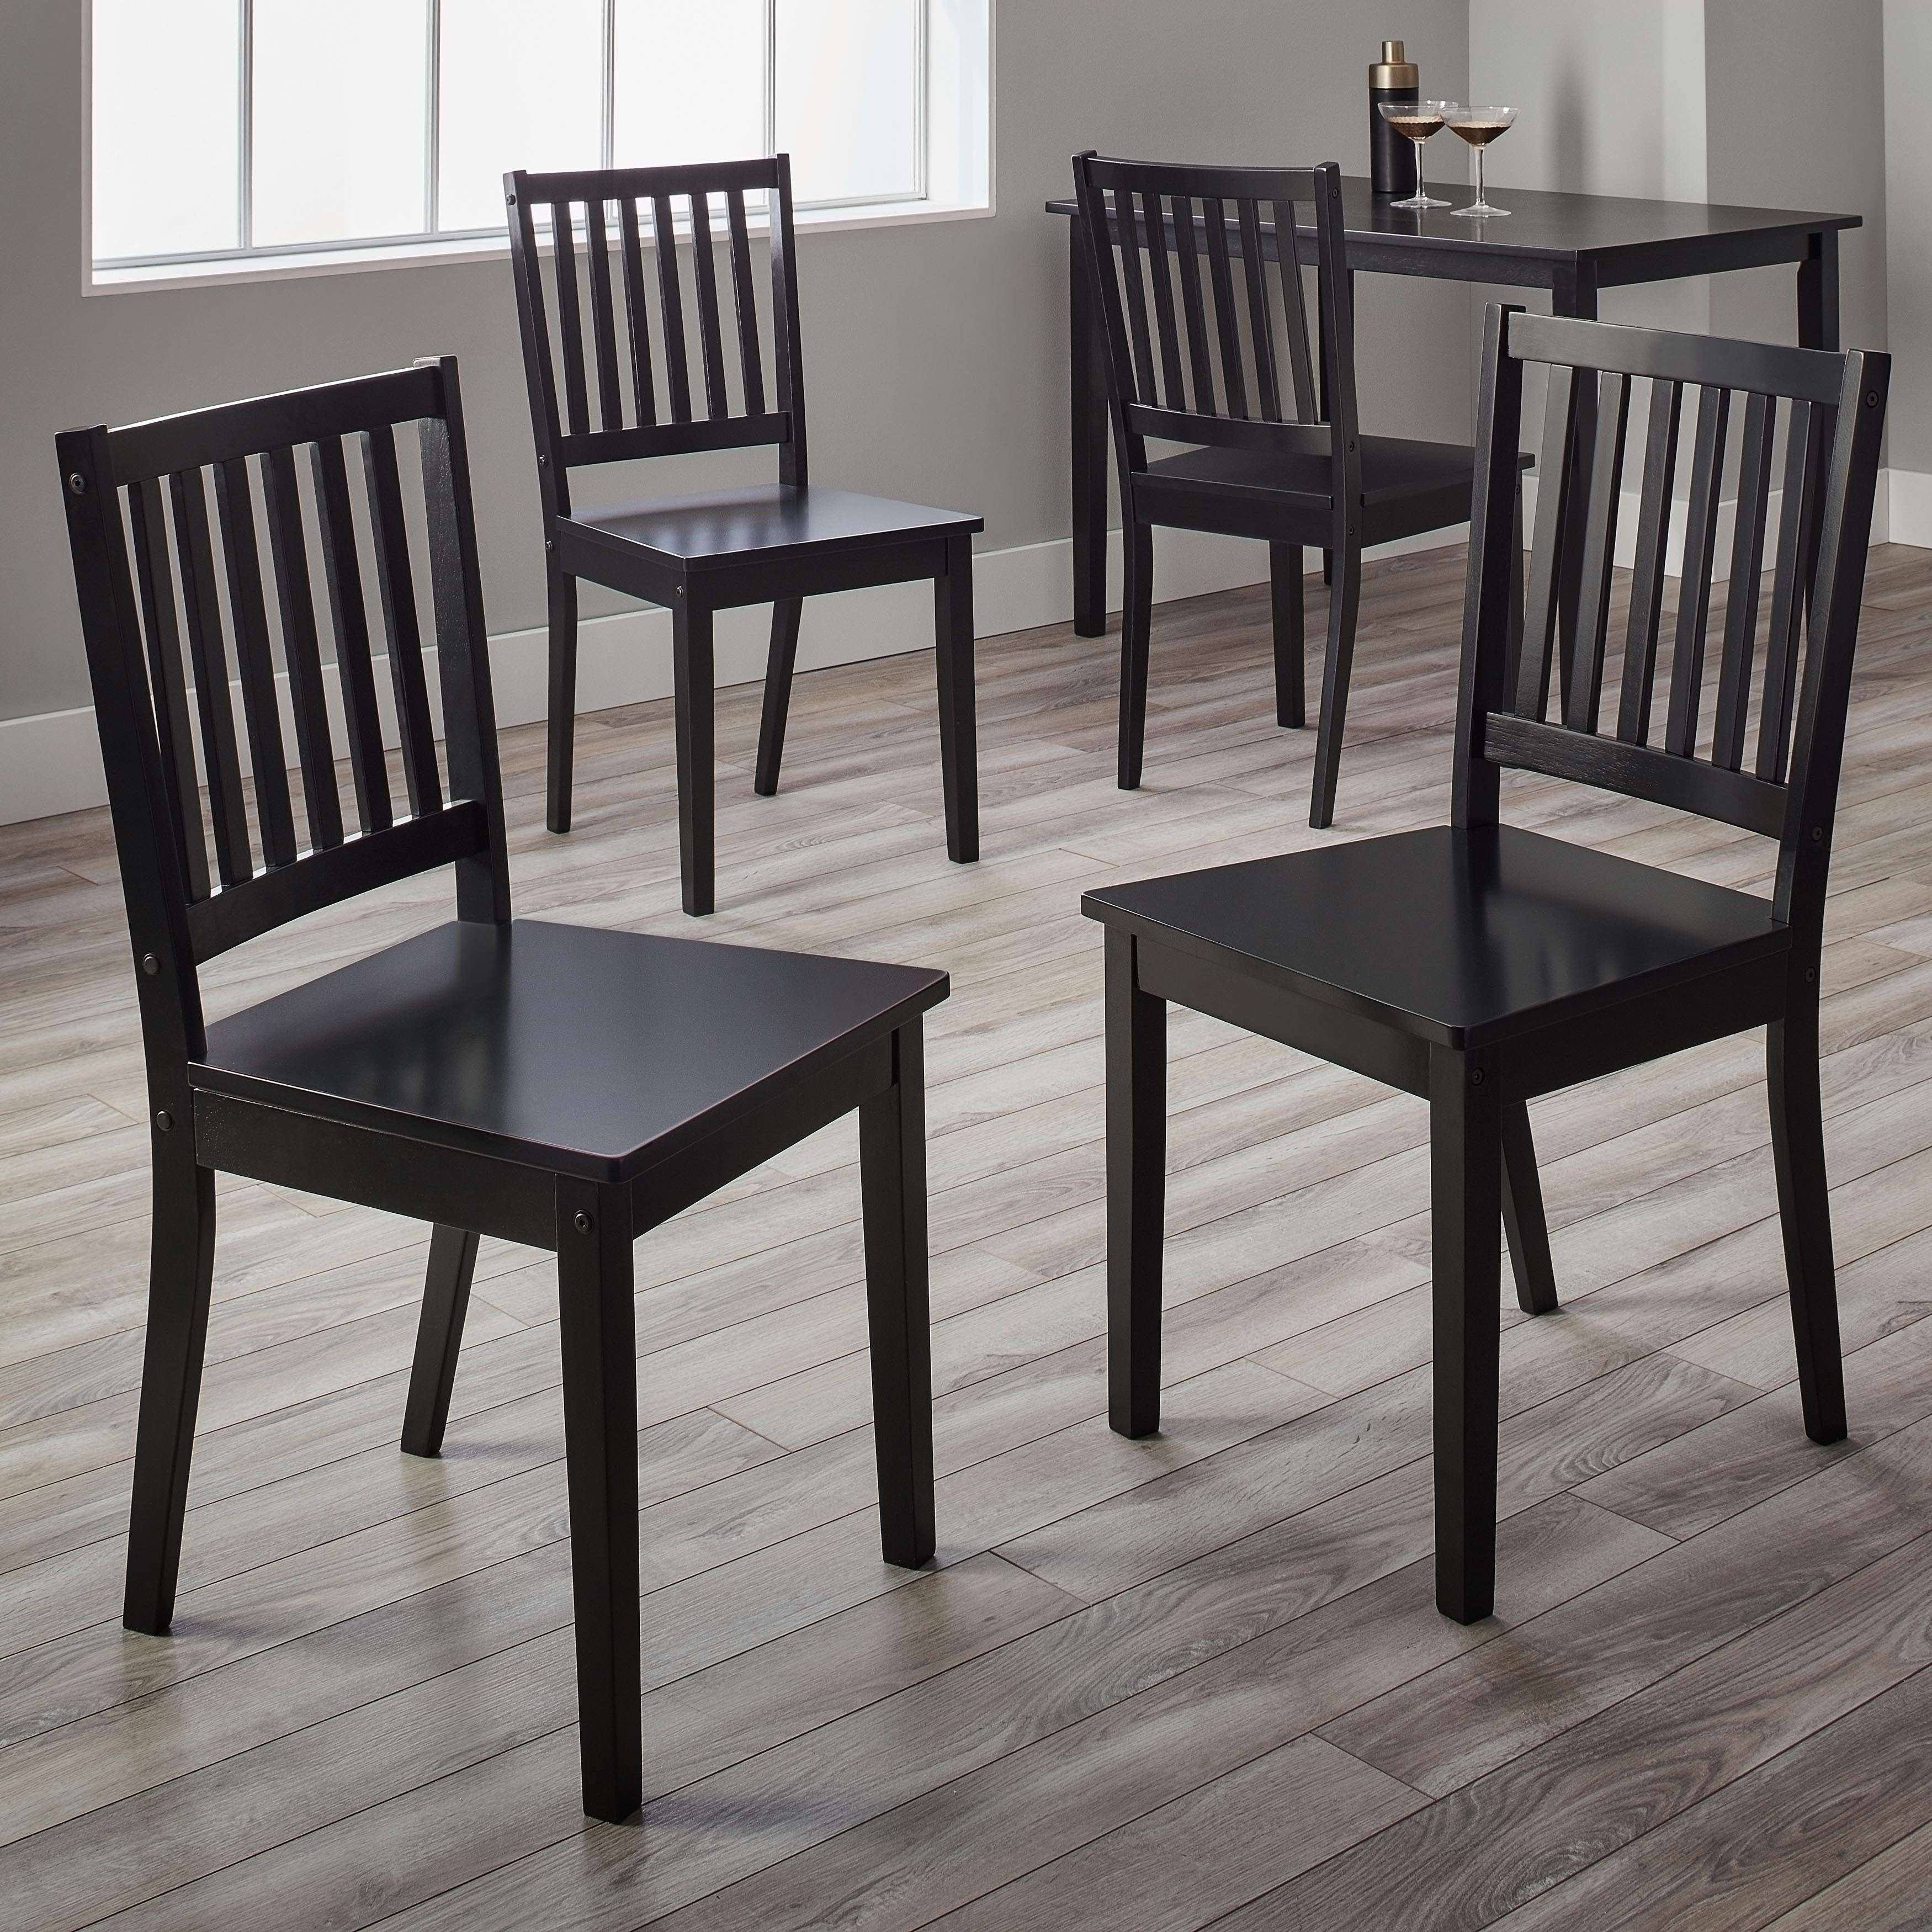 Simple living slat black rubberwood dining chairs set of 4